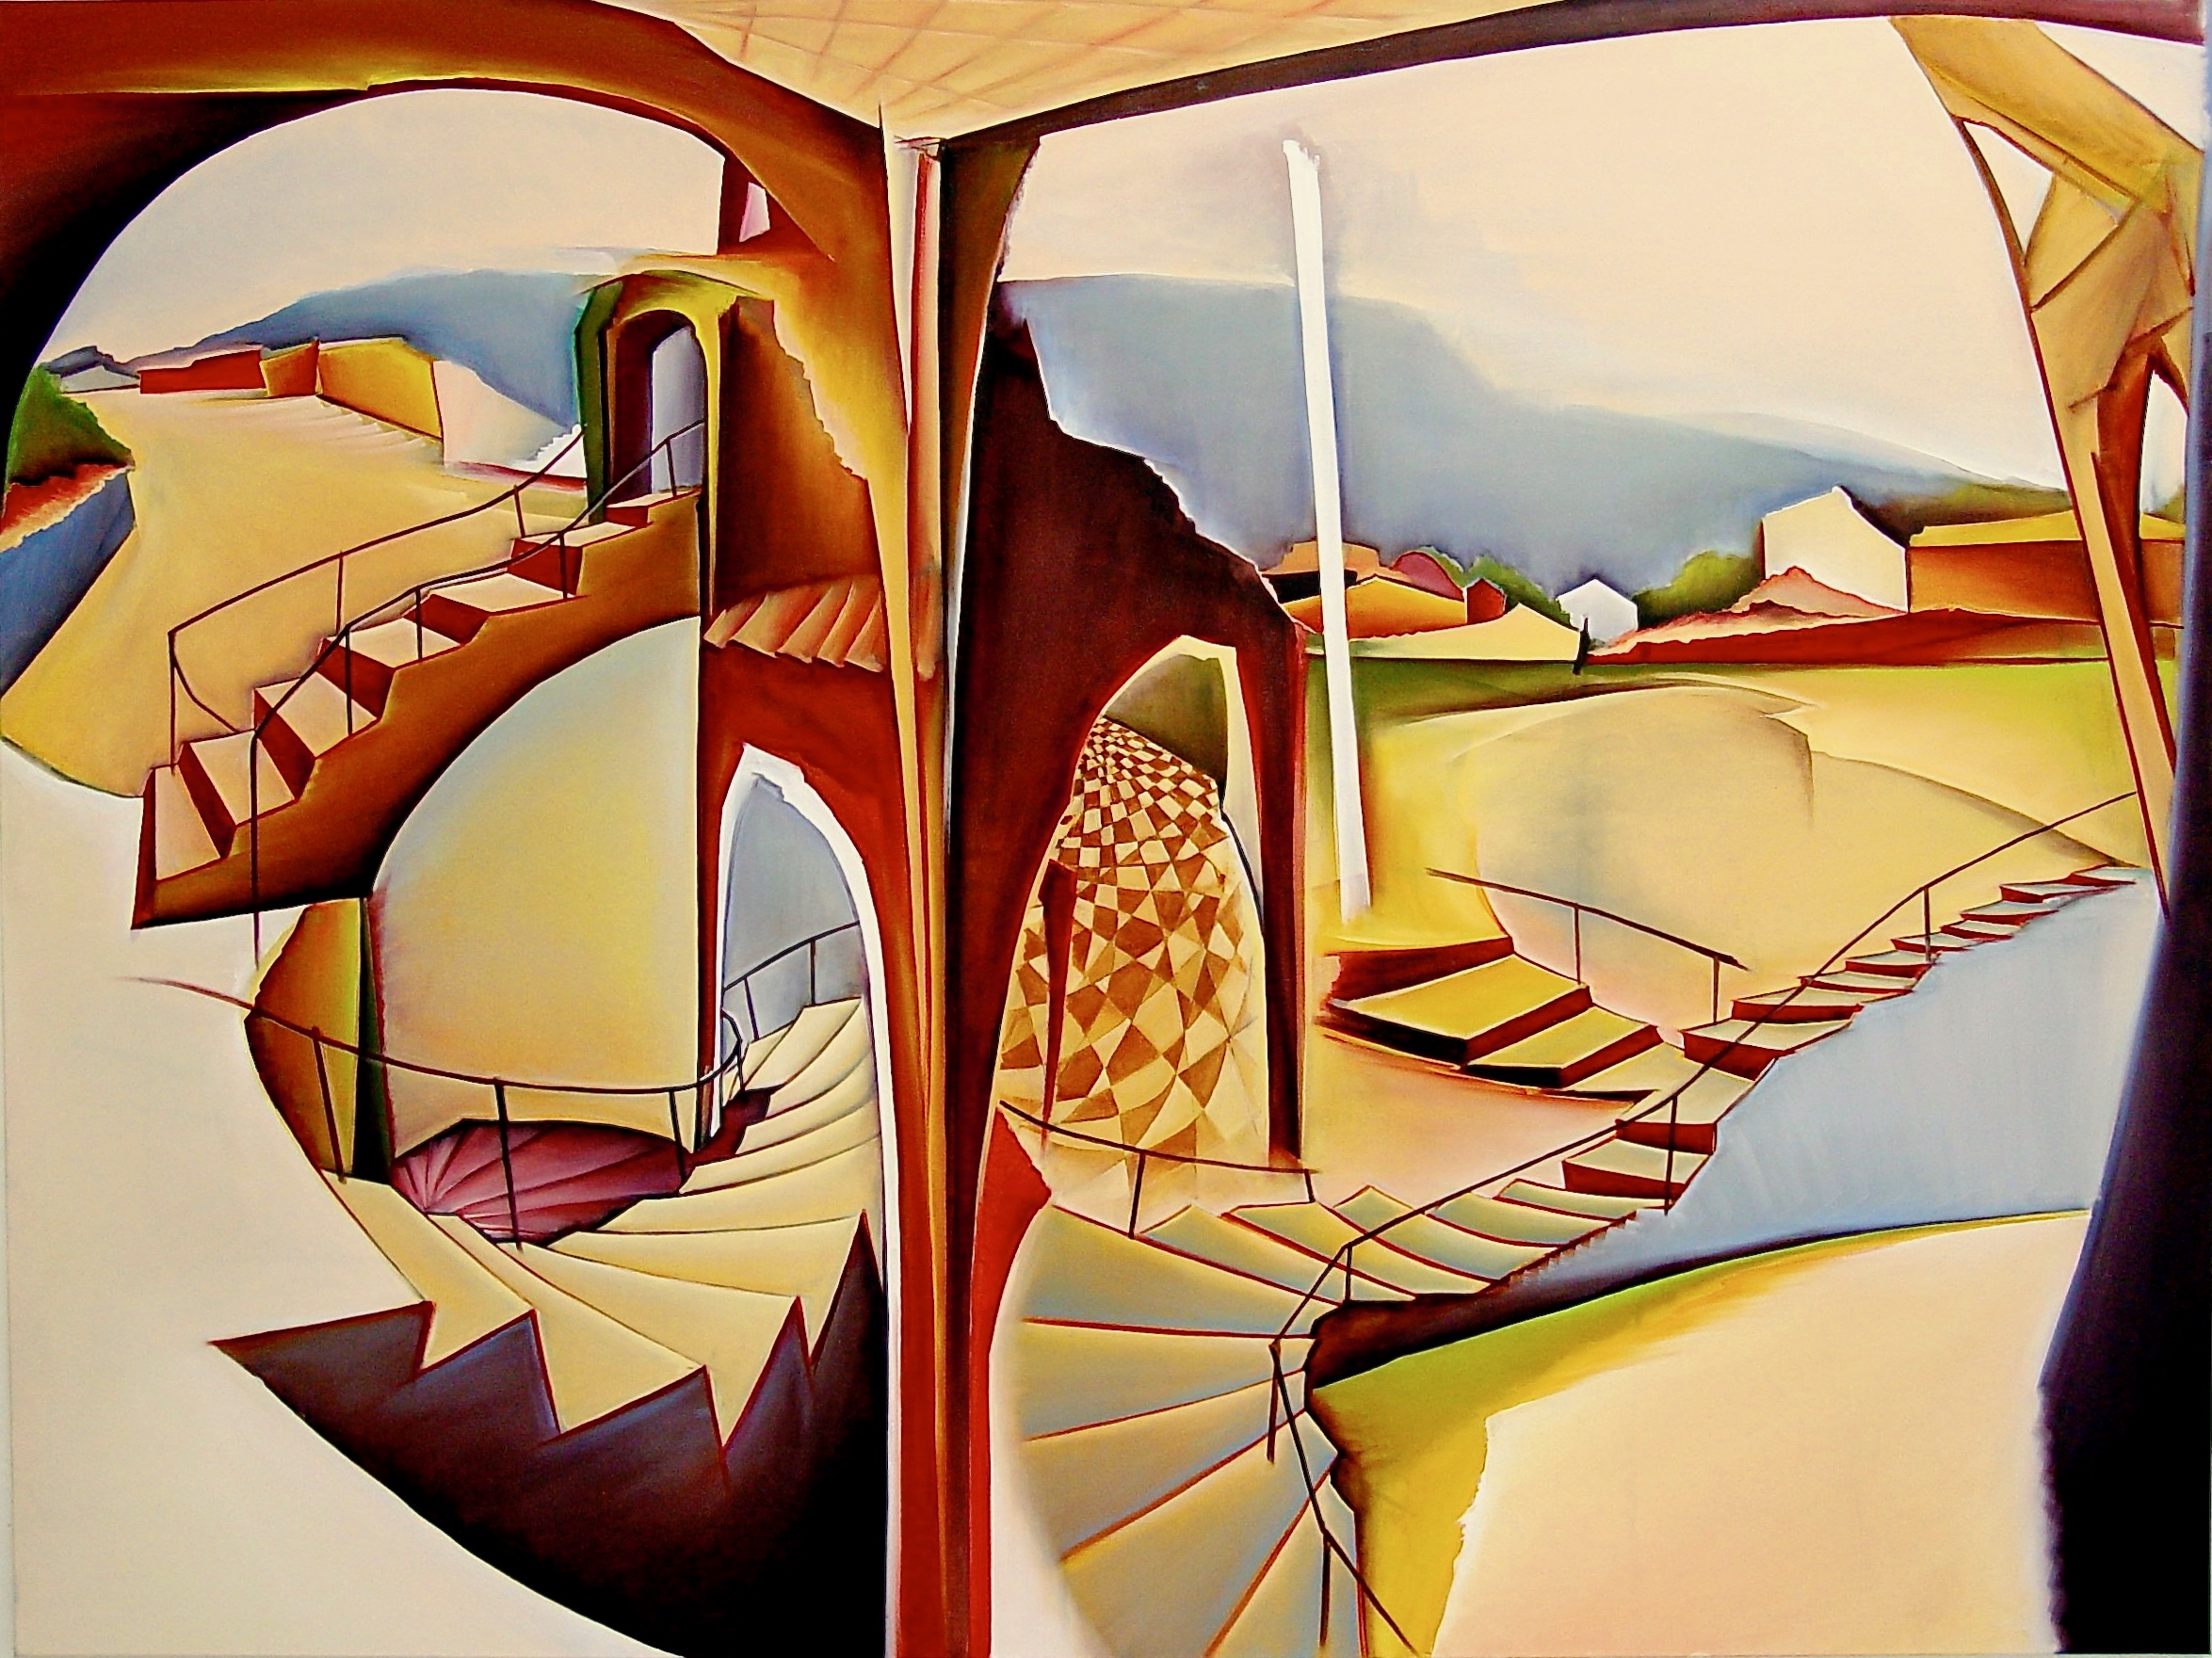 3. Utopia, Oil on canvas, 150 x 200 cm.jpg